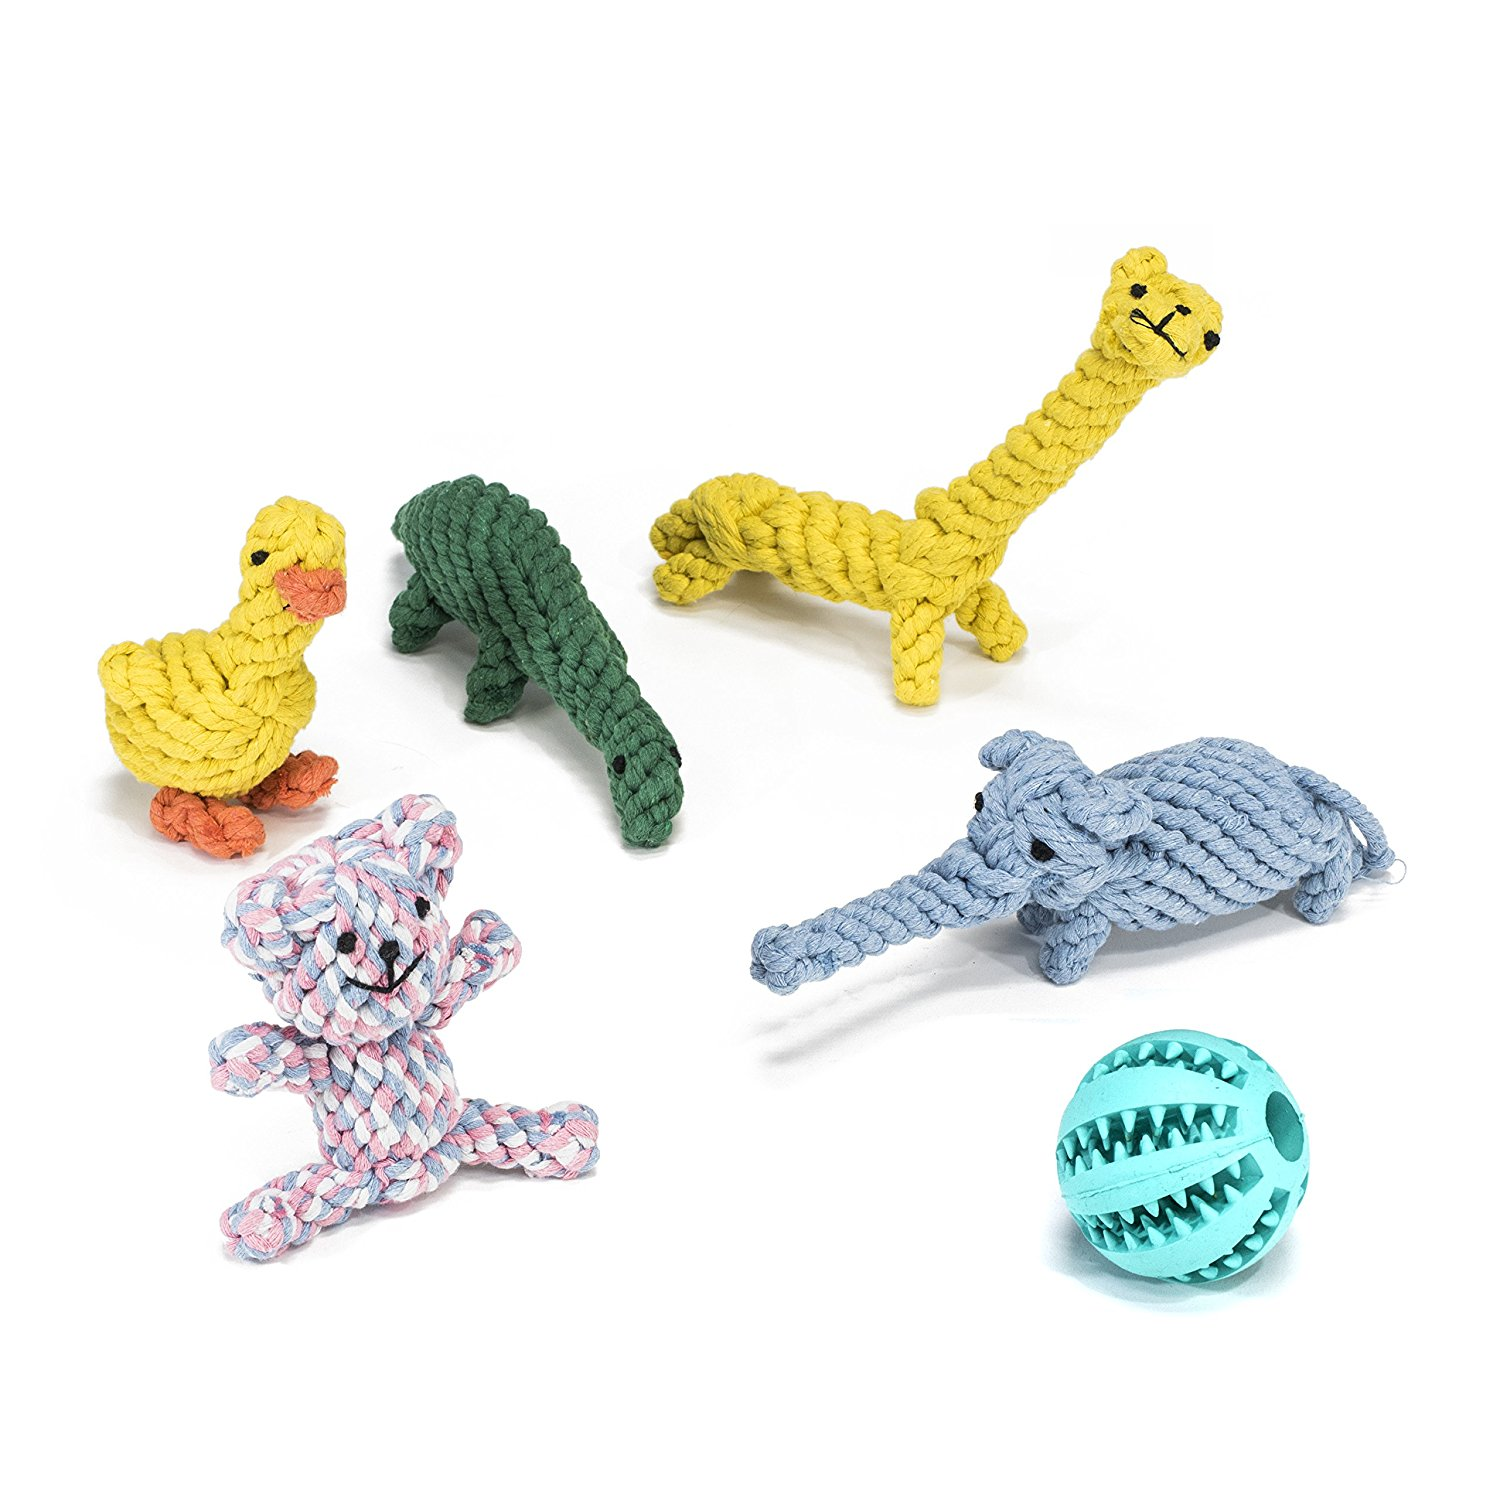 PTRB6 Dog Toy 6 Pack